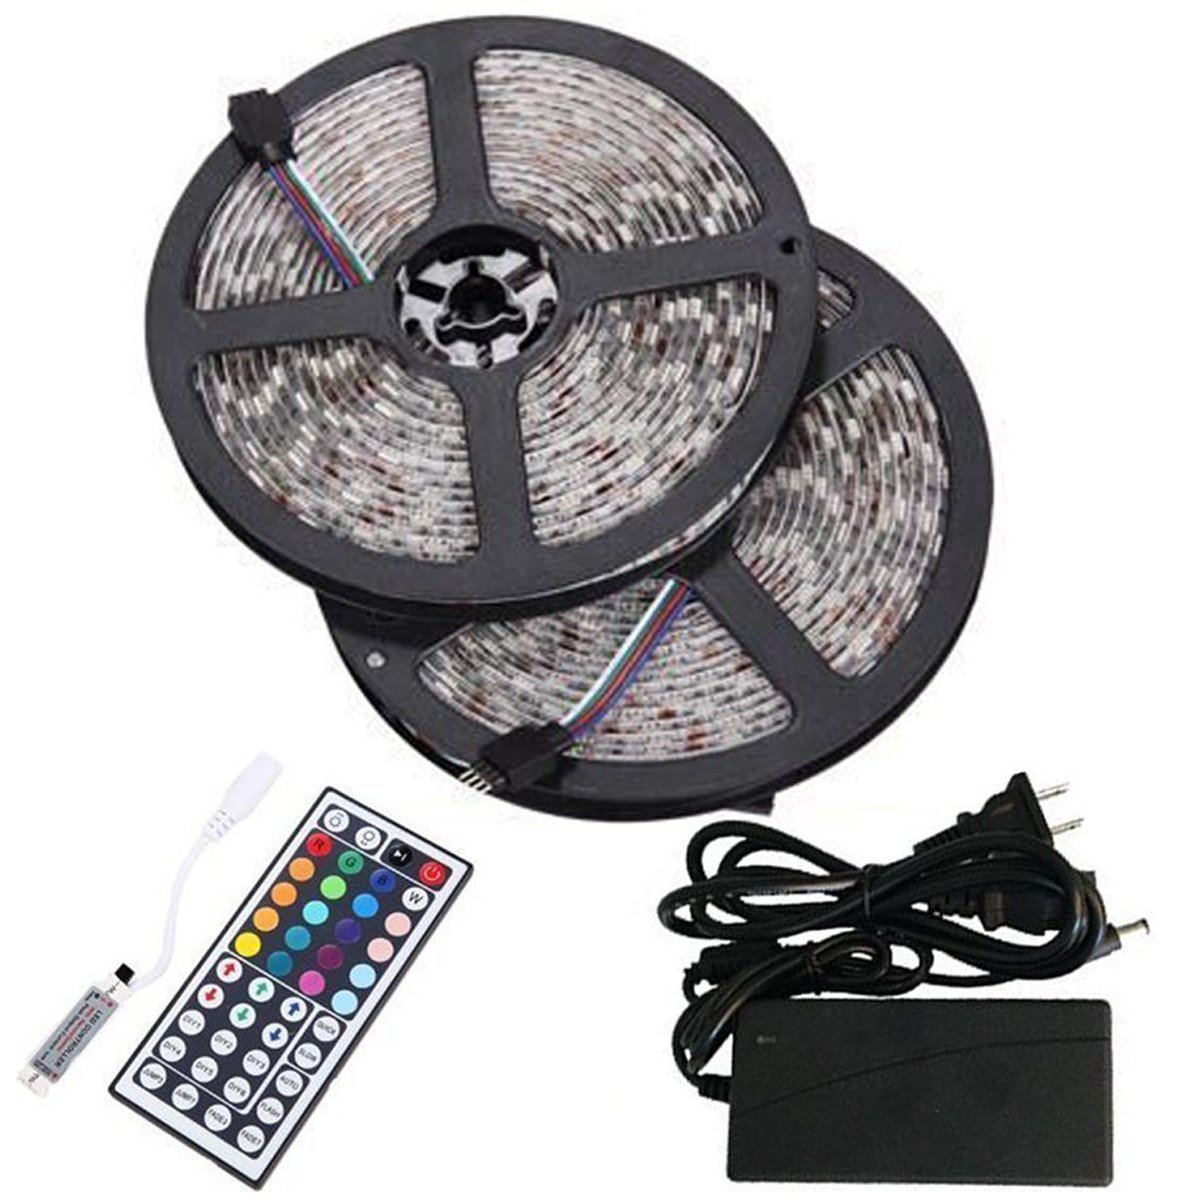 Bmouo 2 reels 12v 32 8ft waterproof flexible rgb led strip light kit multi colored smd5050 300 leds led strip kit mini 44 key ir controller 12v 5a